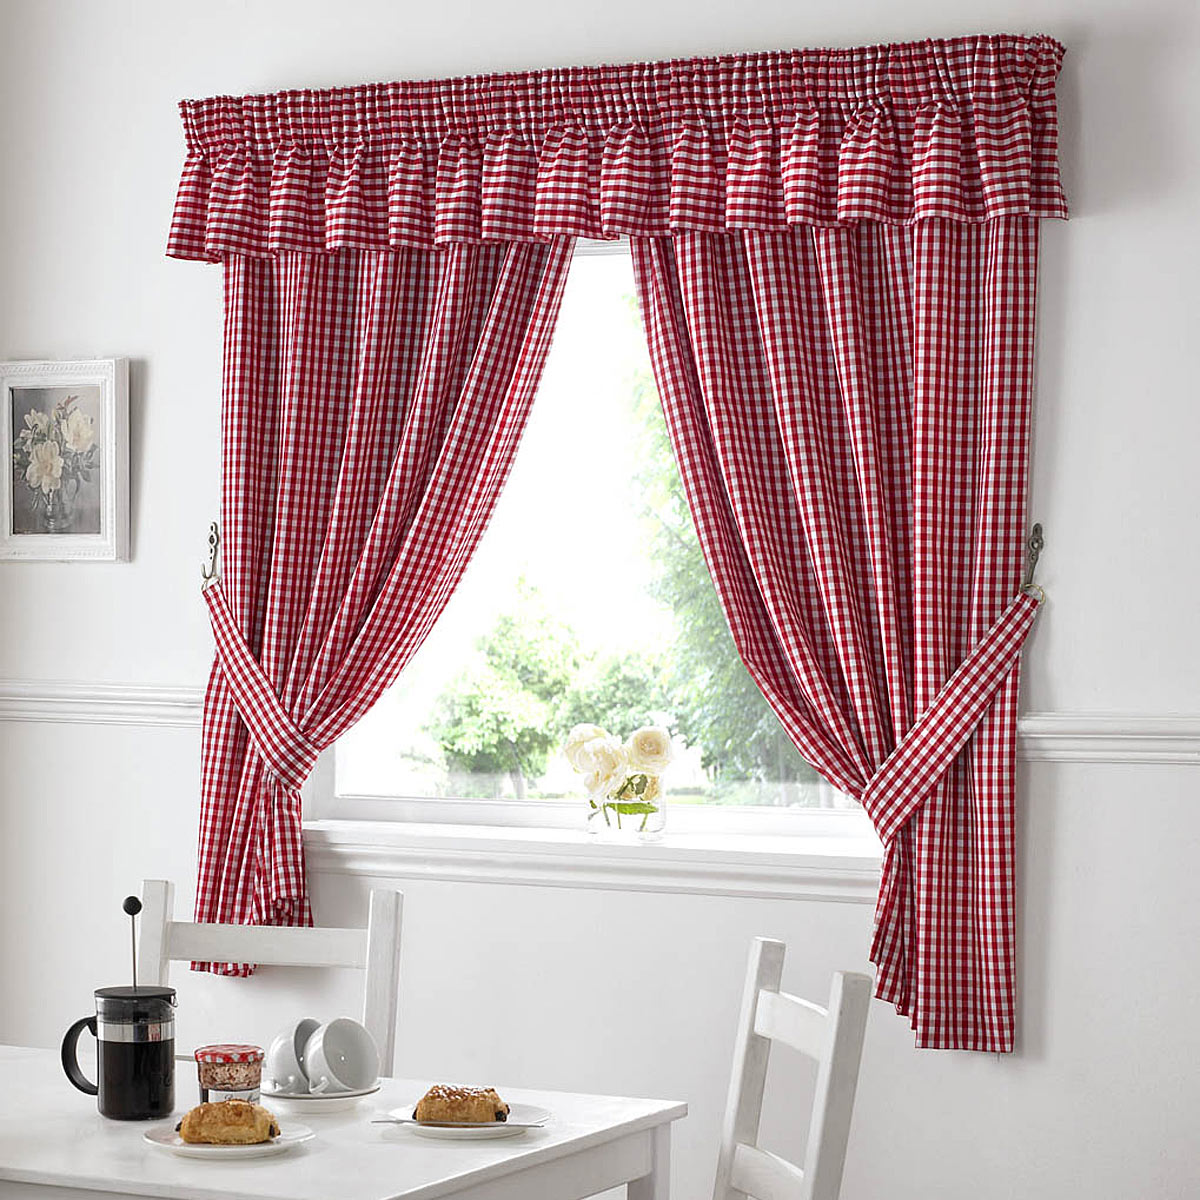 10 photos to red gingham kitchen curtains